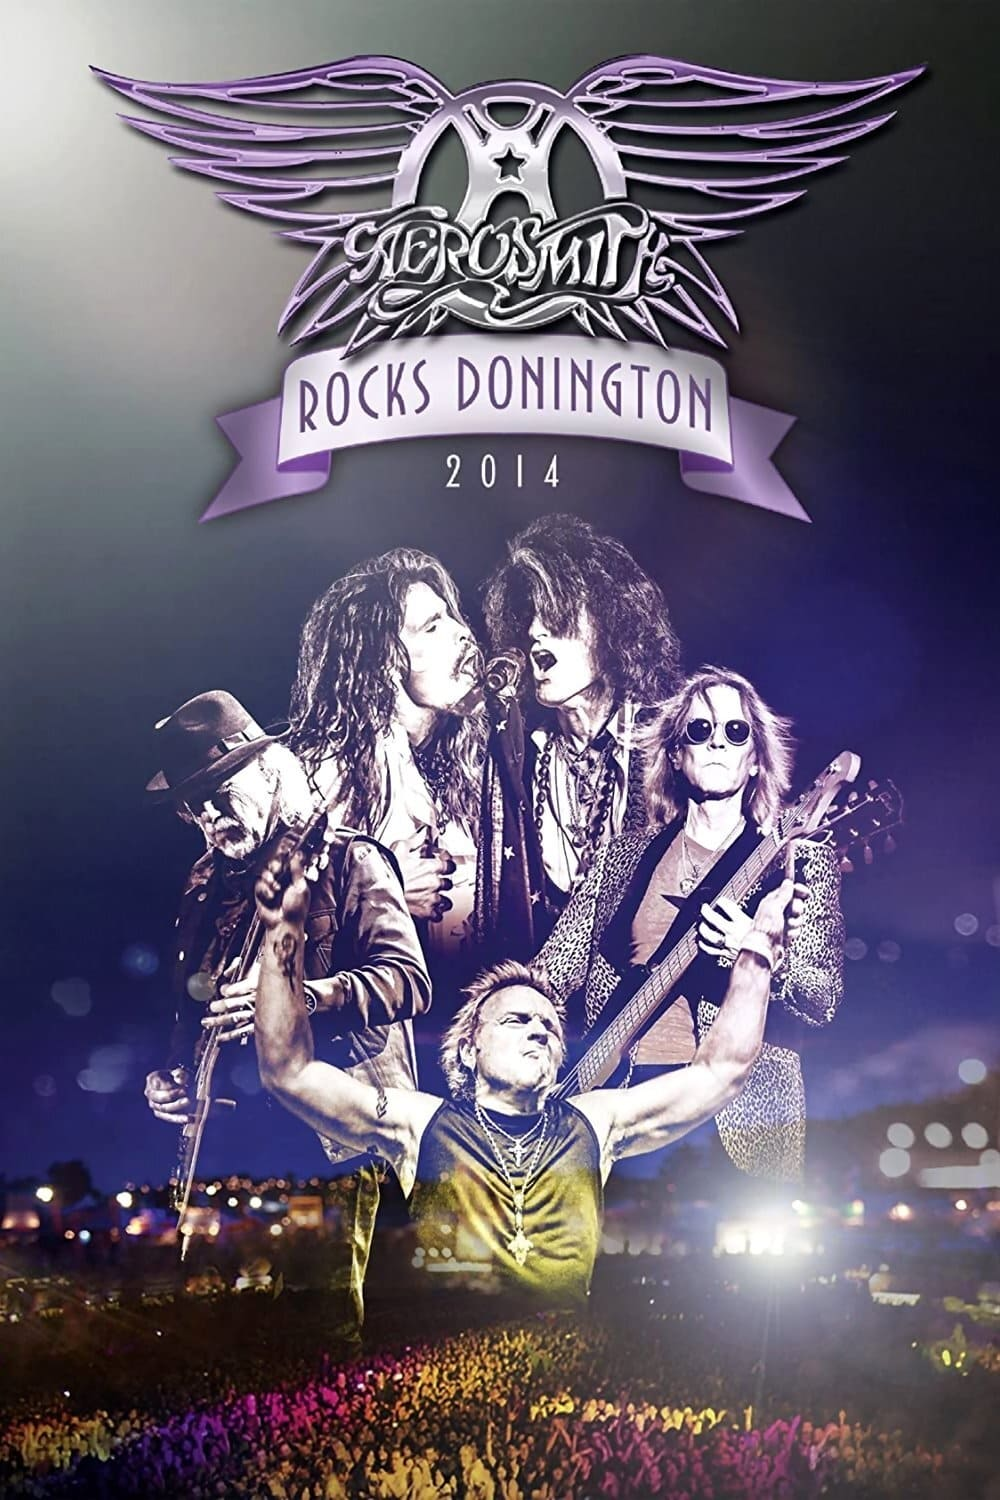 Aerosmith - Rocks Donington 2014 (2015)